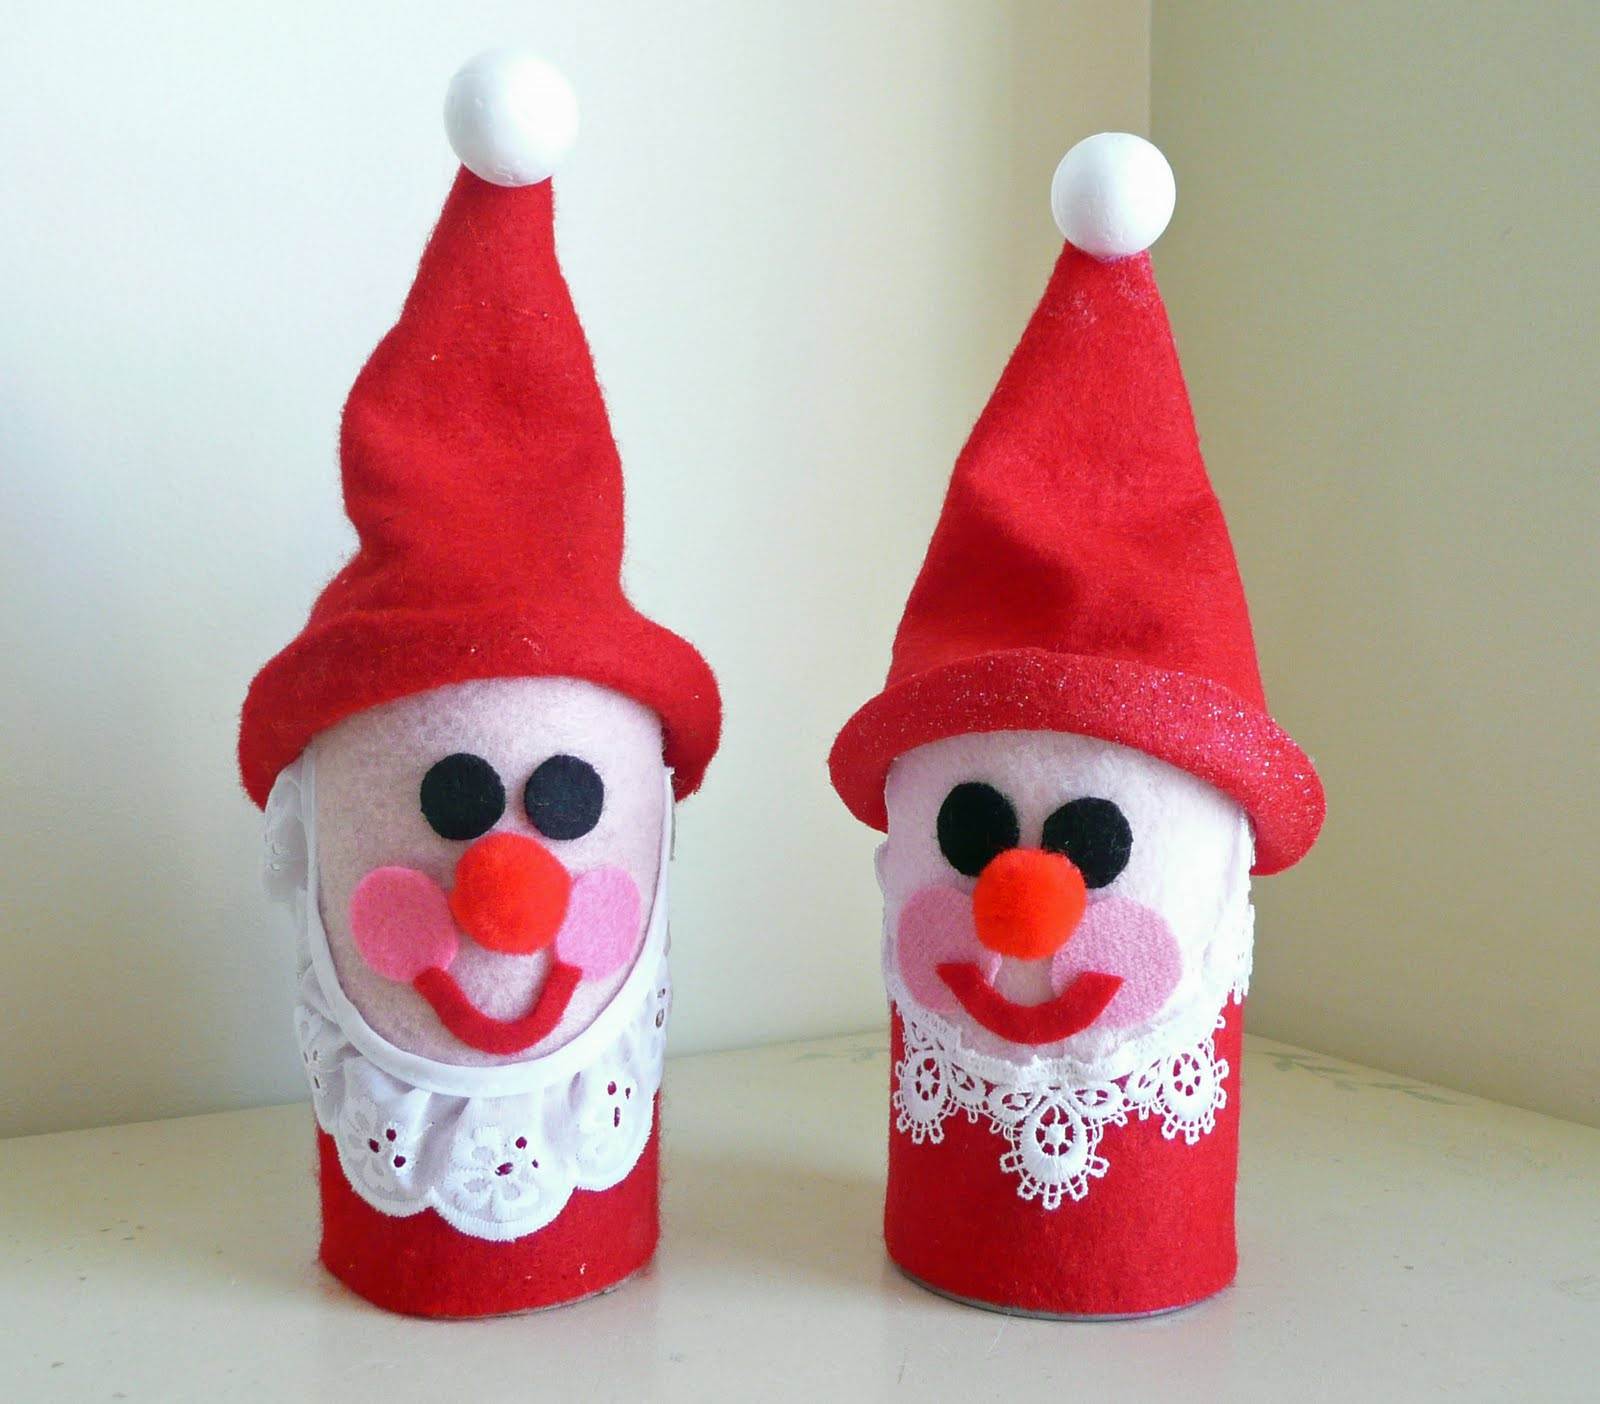 Best ideas about Christmas Craft Ideas For Children . Save or Pin Preschool Crafts for Kids Toilet Roll Santa Christmas Craft Now.